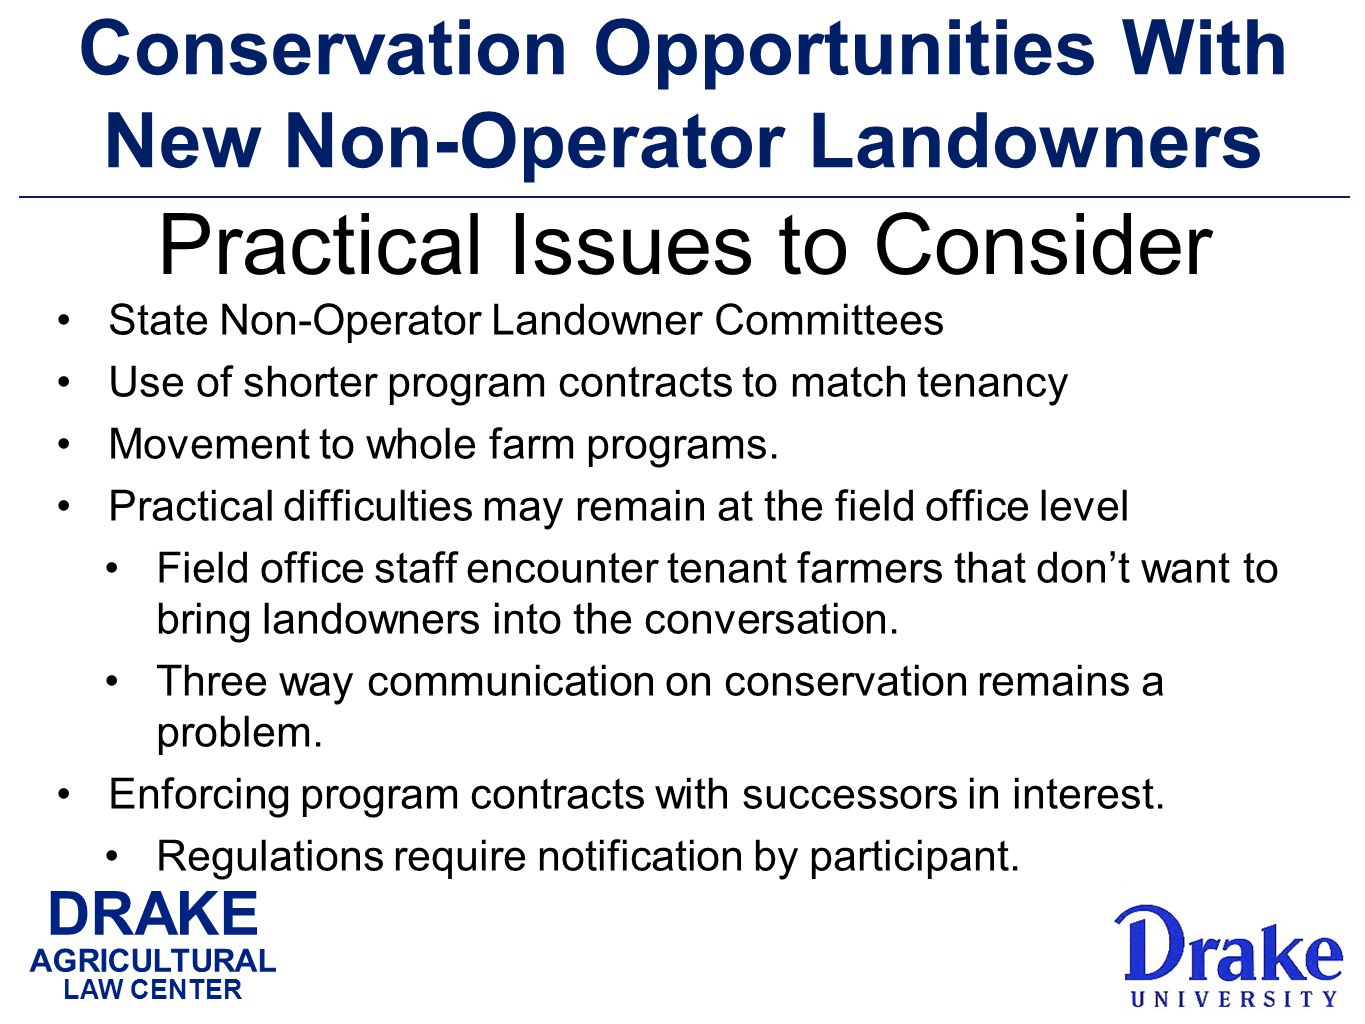 DRAKE AGRICULTURAL LAW CENTER Conservation Opportunities With New Non-Operator Landowners State Non-Operator Landowner Committees Use of shorter program contracts to match tenancy Movement to whole farm programs.